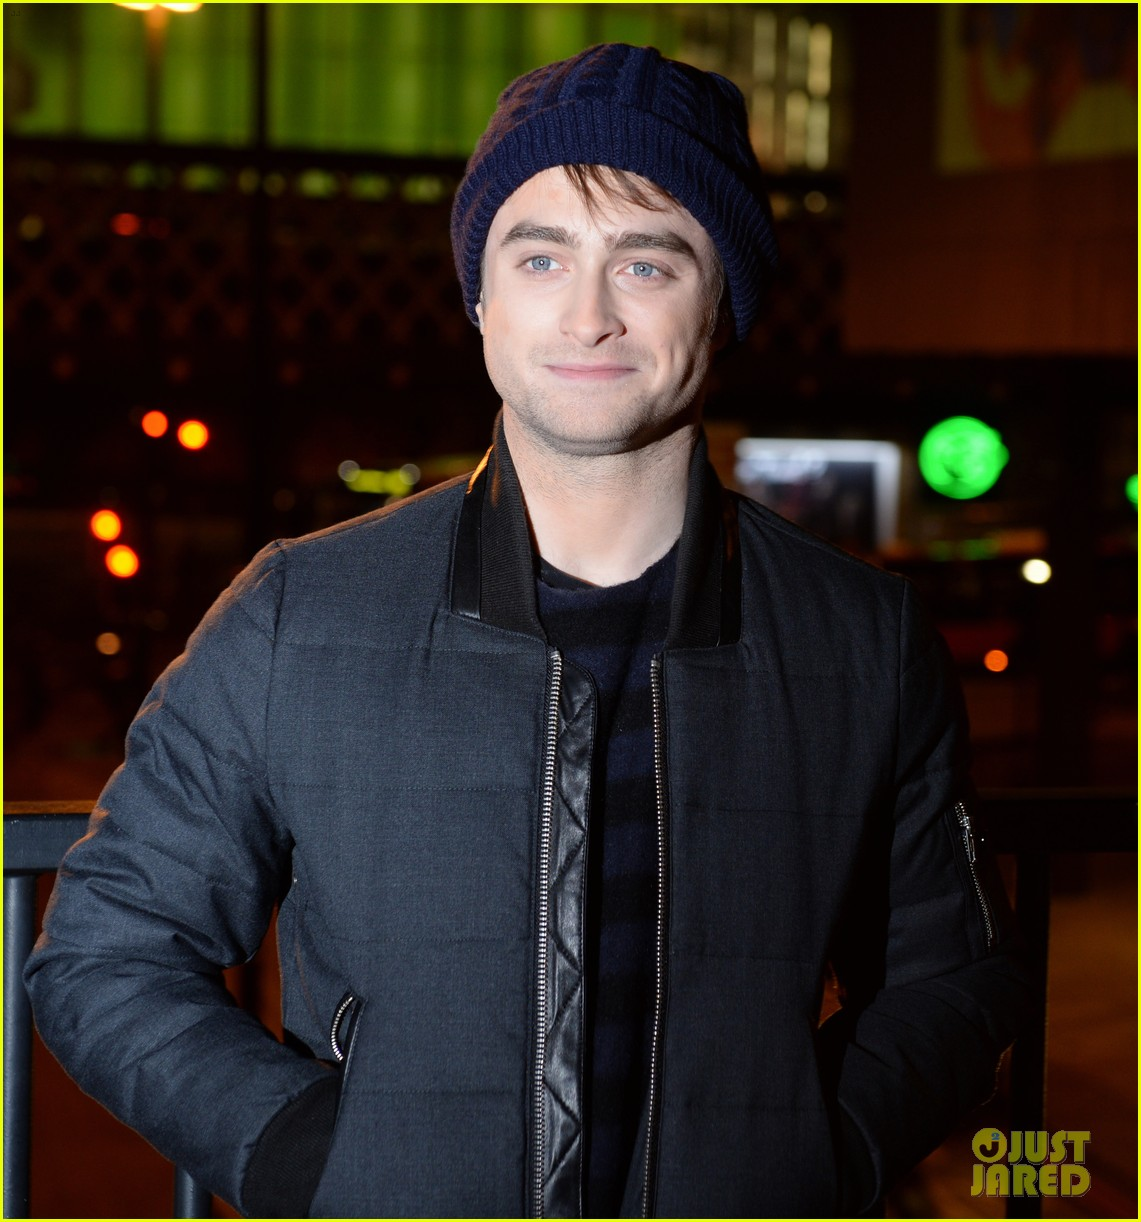 daniel radcliffe dont tweet if you expect privacy 07